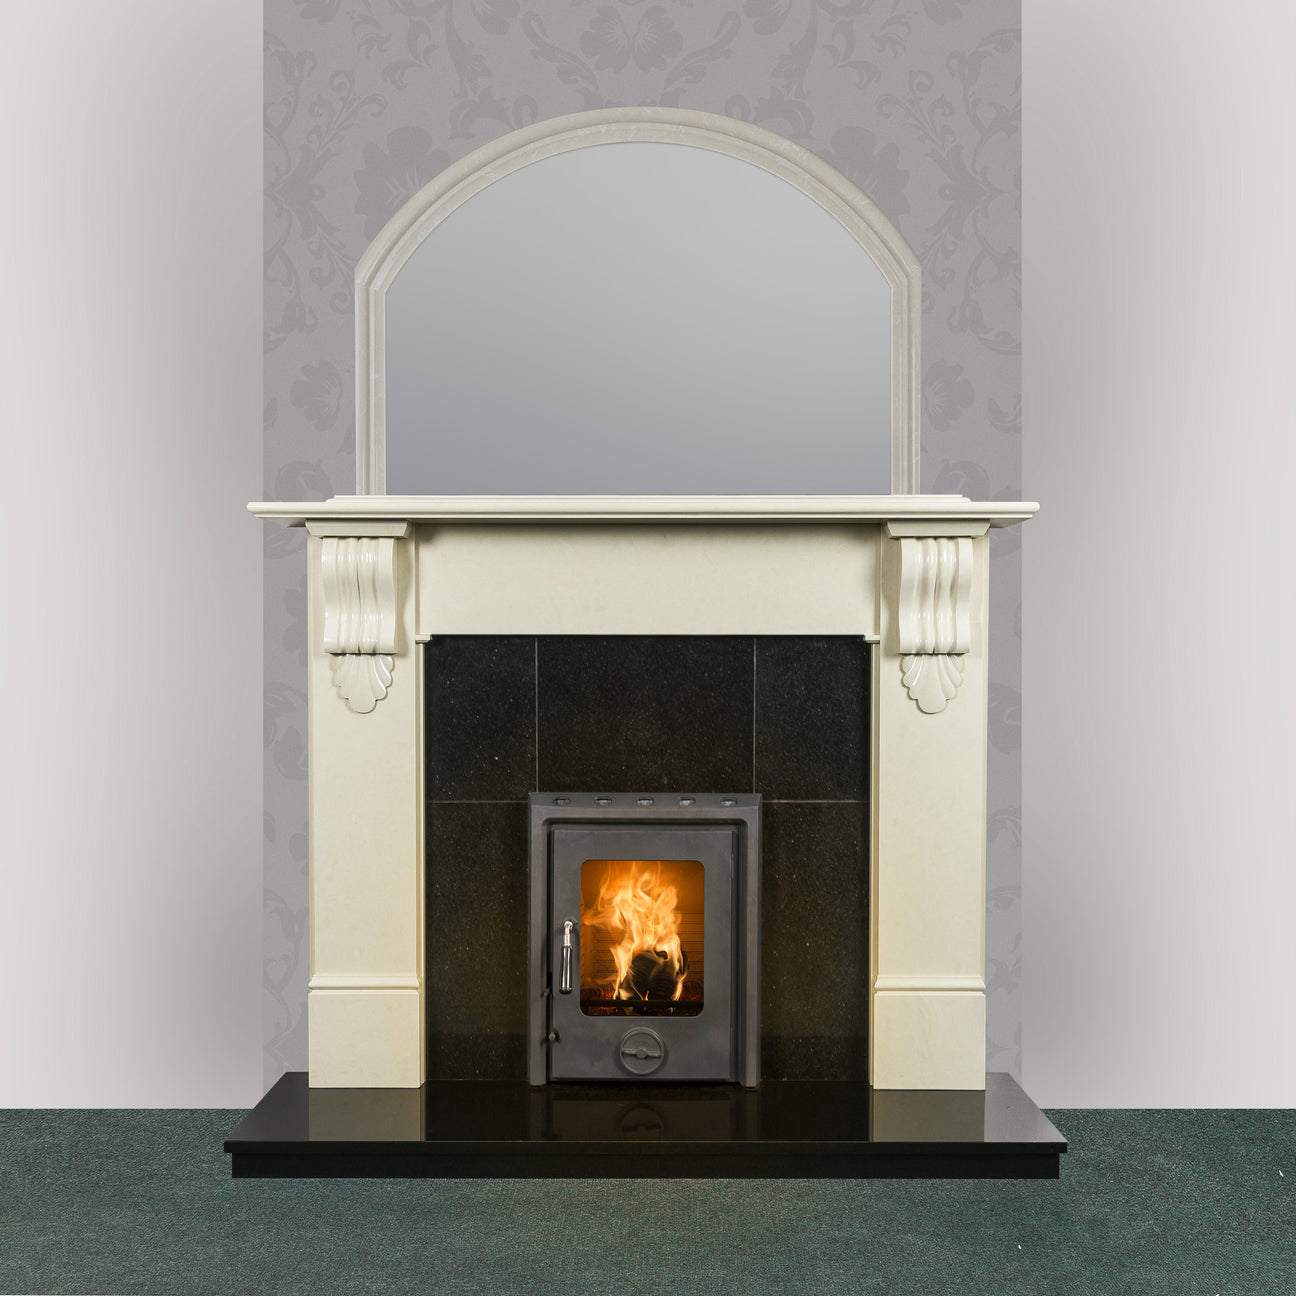 Image of Victoria Marble Fireplace in Ivory Pearl finish with Kate Insert stove in matt black